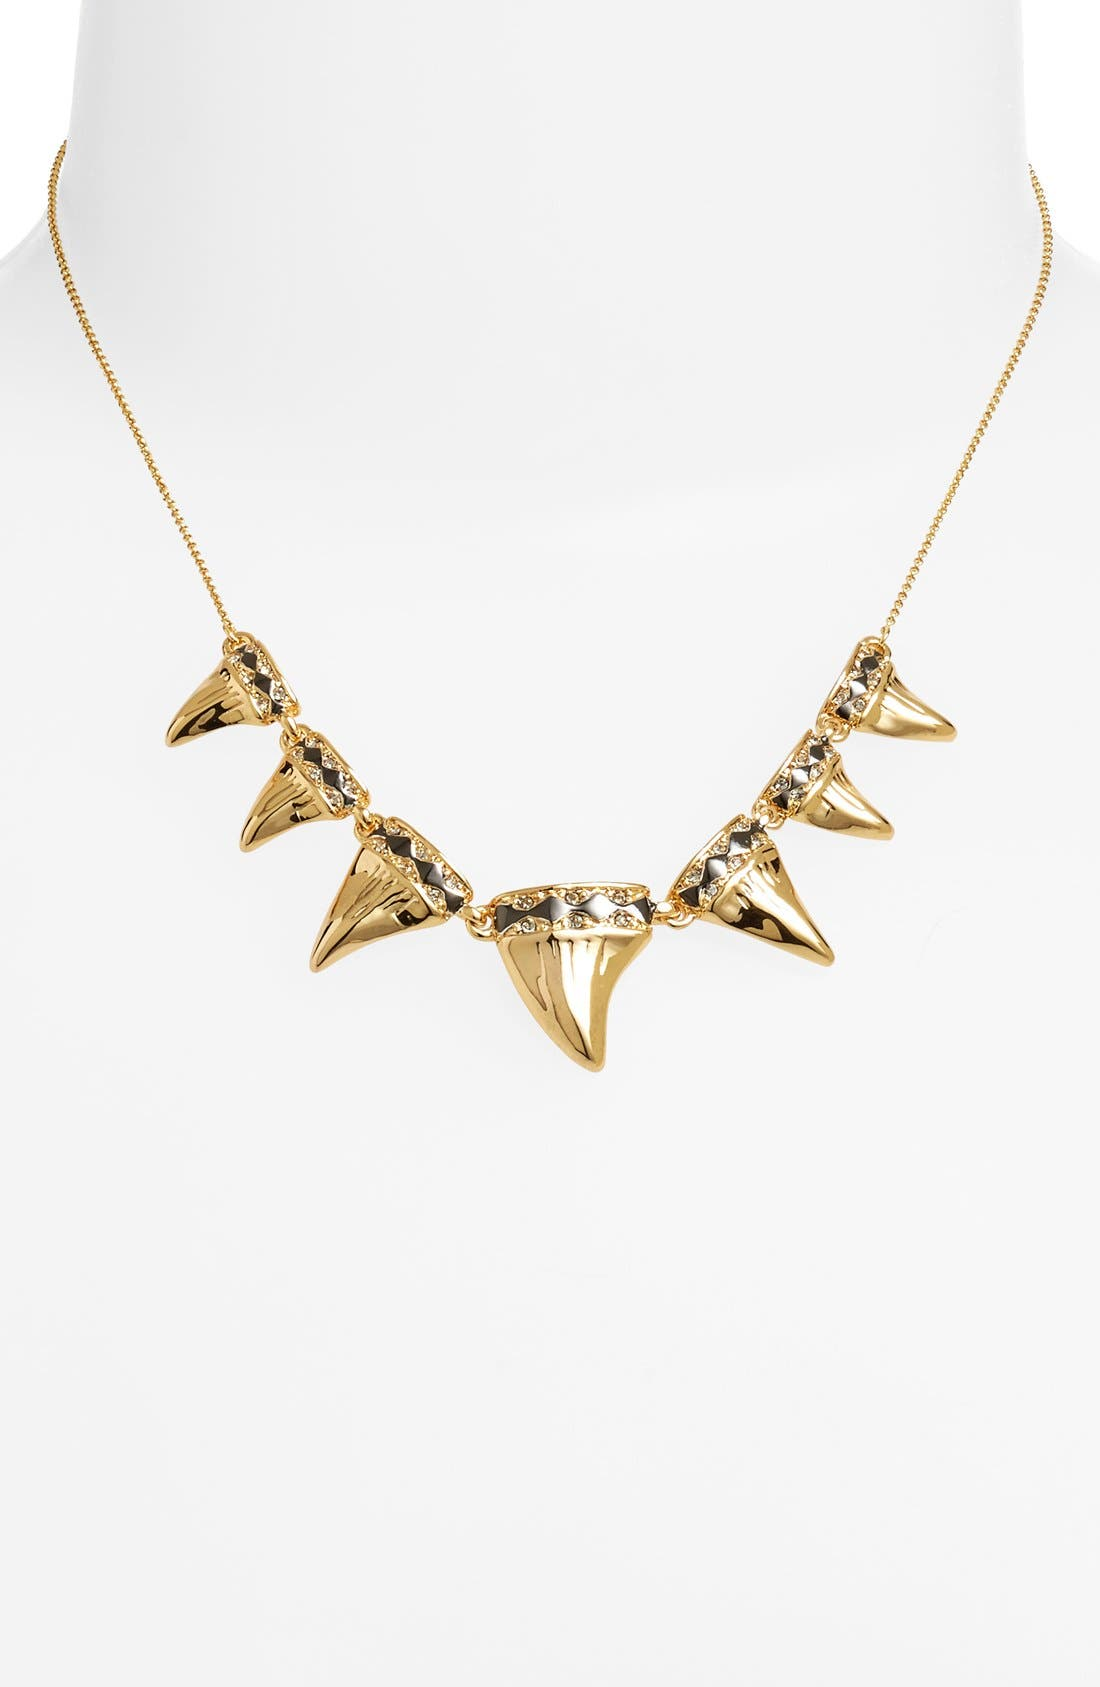 Alternate Image 1 Selected - House of Harlow 1960 'Shark Tooth' Frontal Necklace